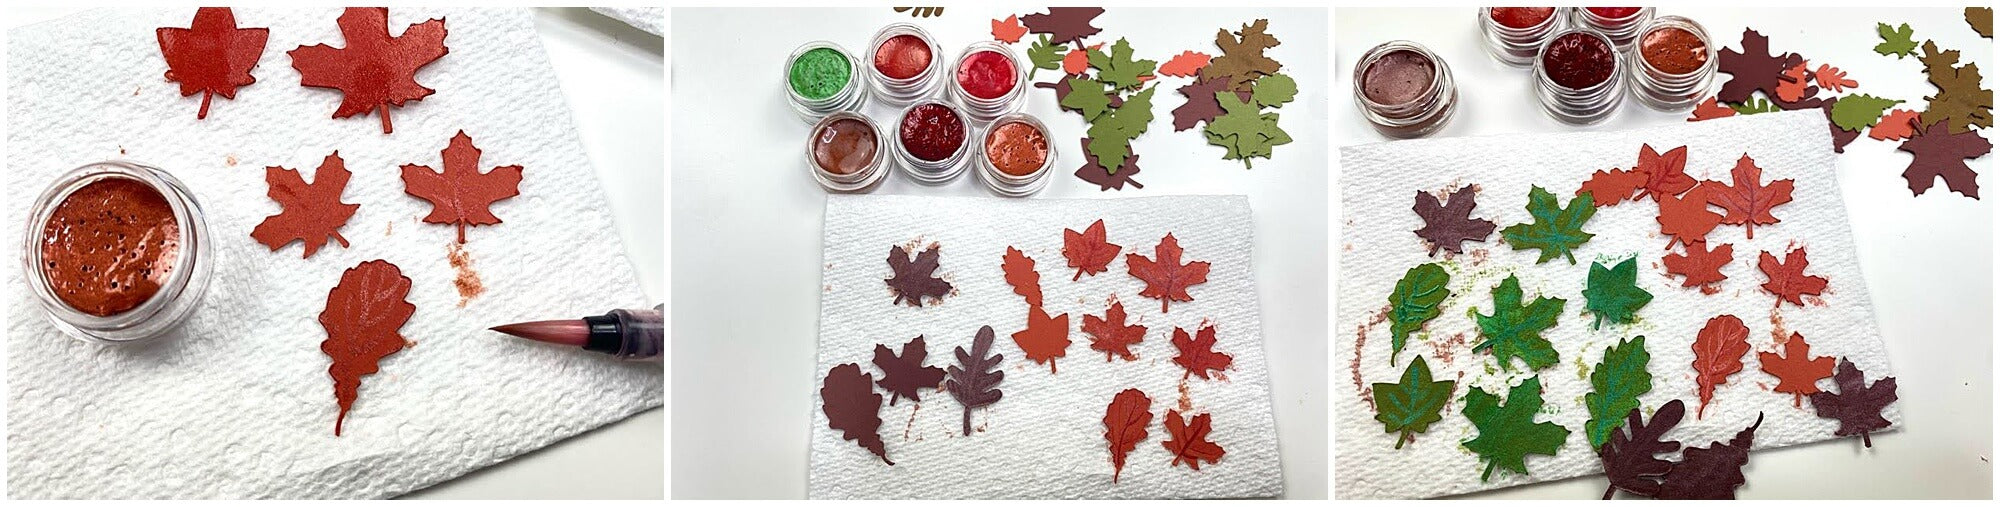 Adding shimmer paint to leaves